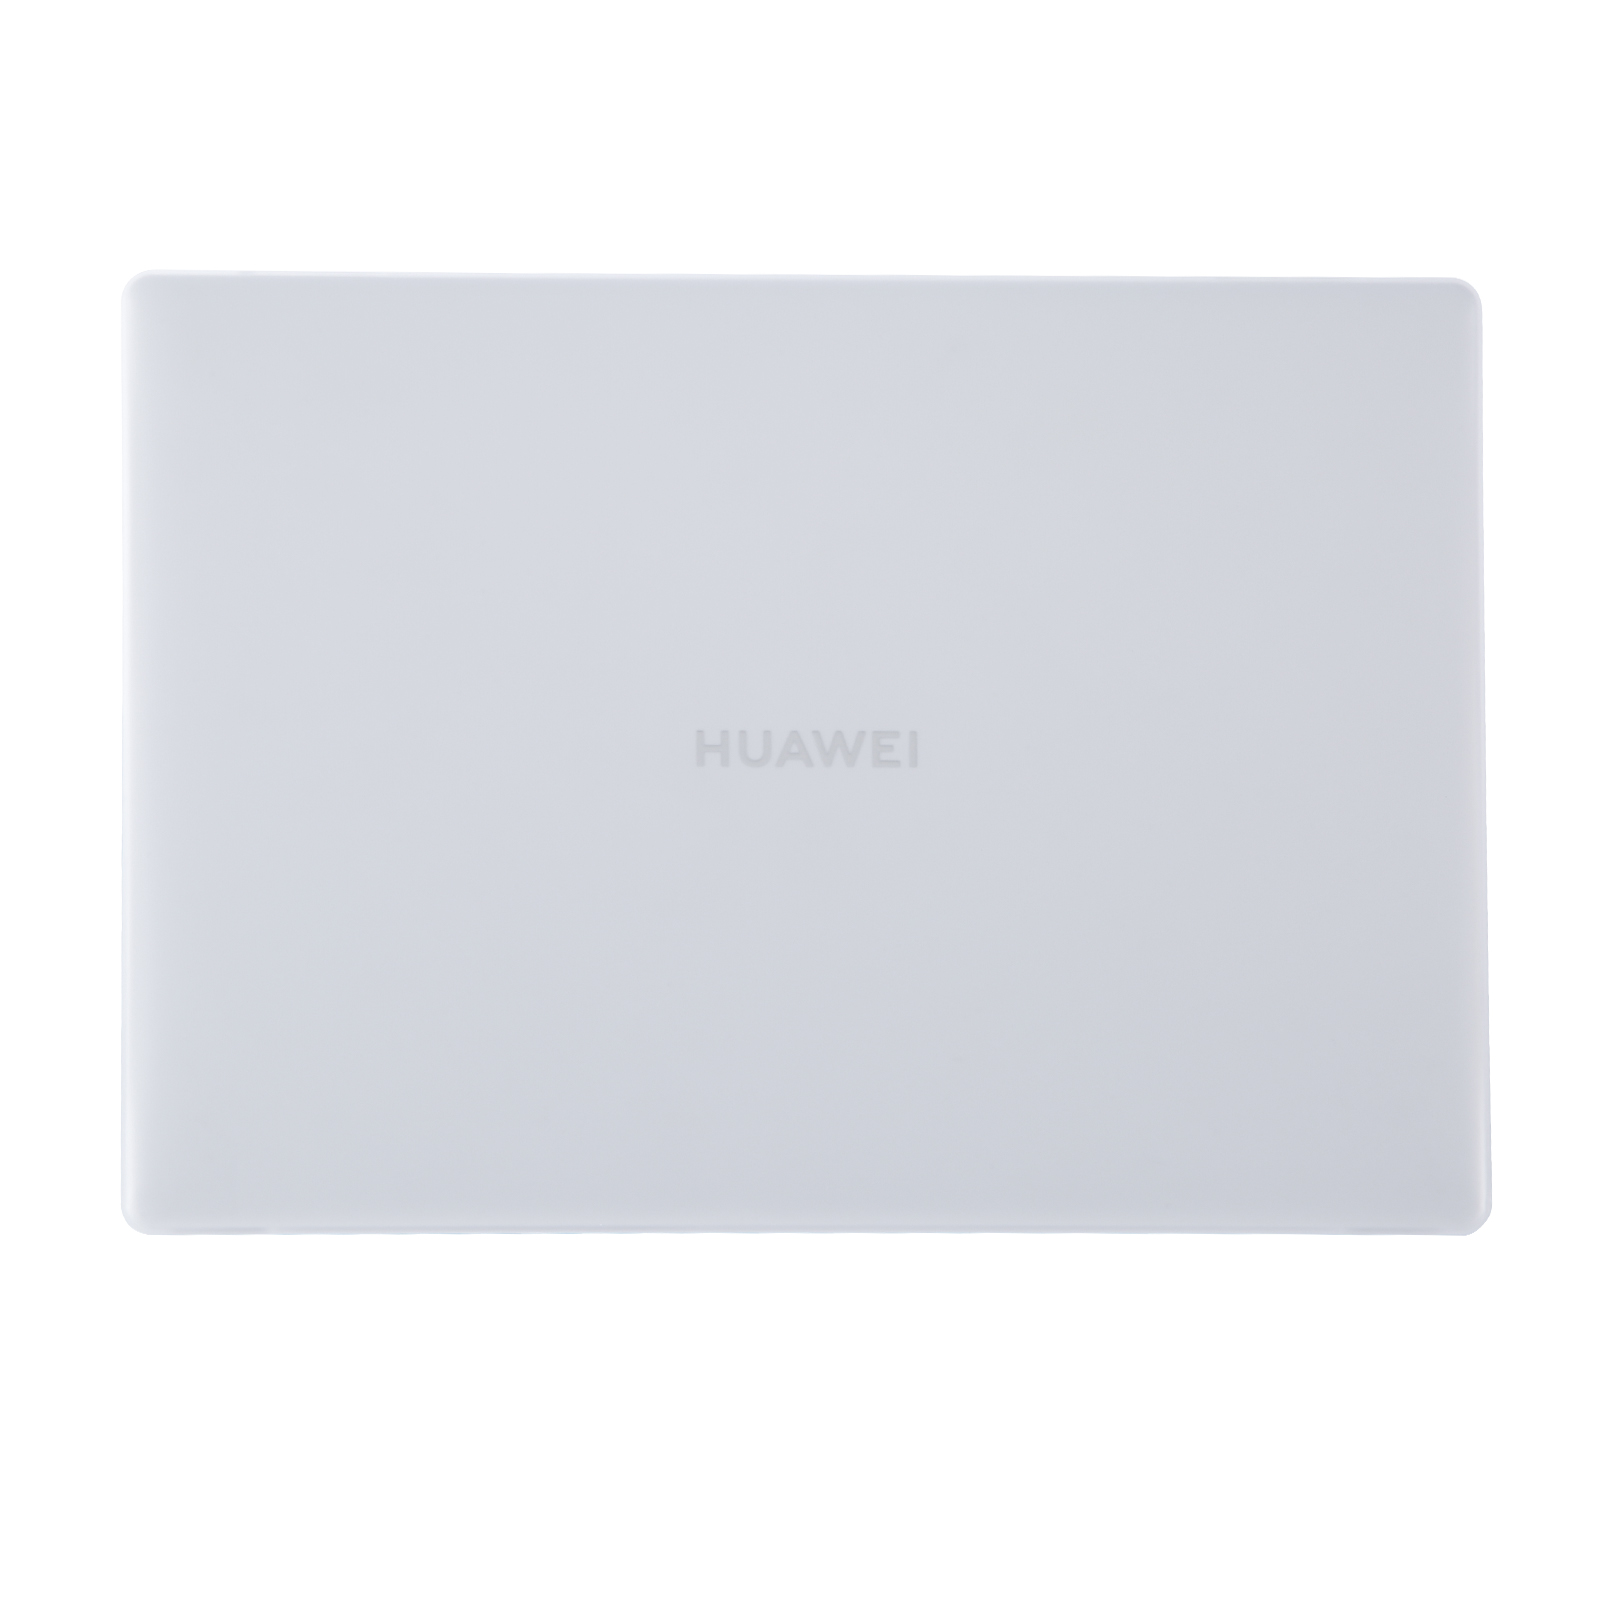 Neweat Matte Clear Black Soft Shell Case Plastic Case Laptop beschermhoes voor Huawei Matebook 14